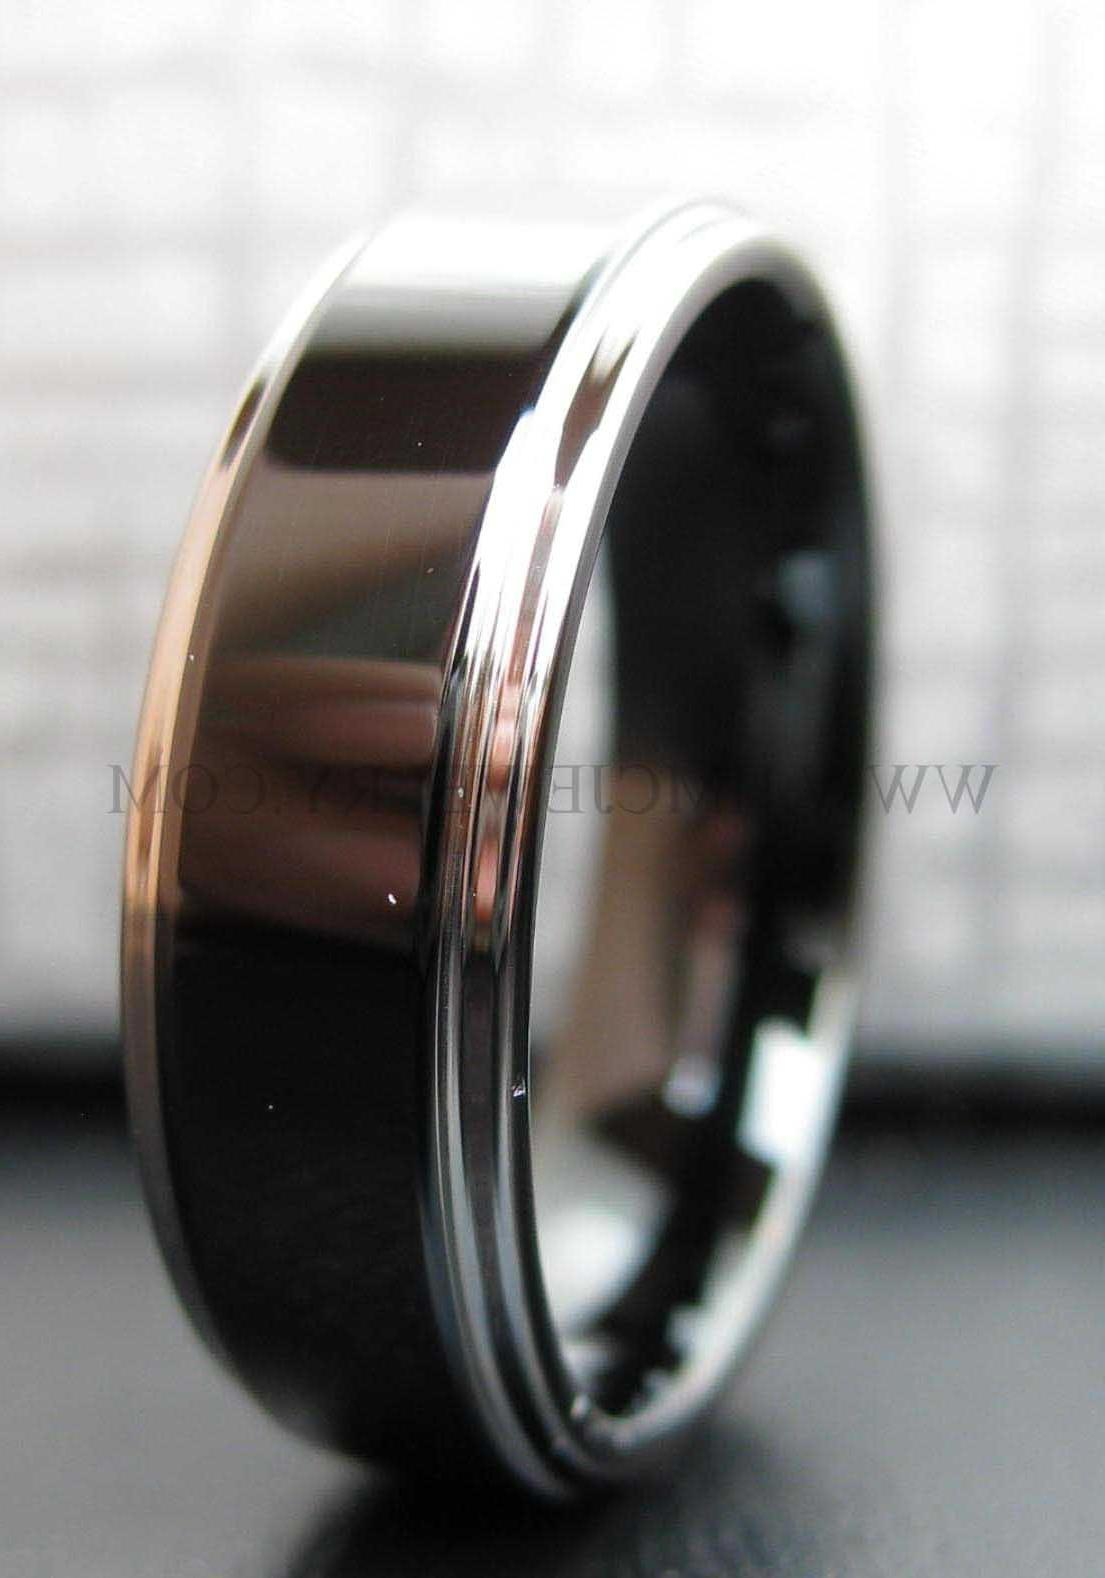 mens fashion rings stainless steel or titanium satine finished, HOT selling